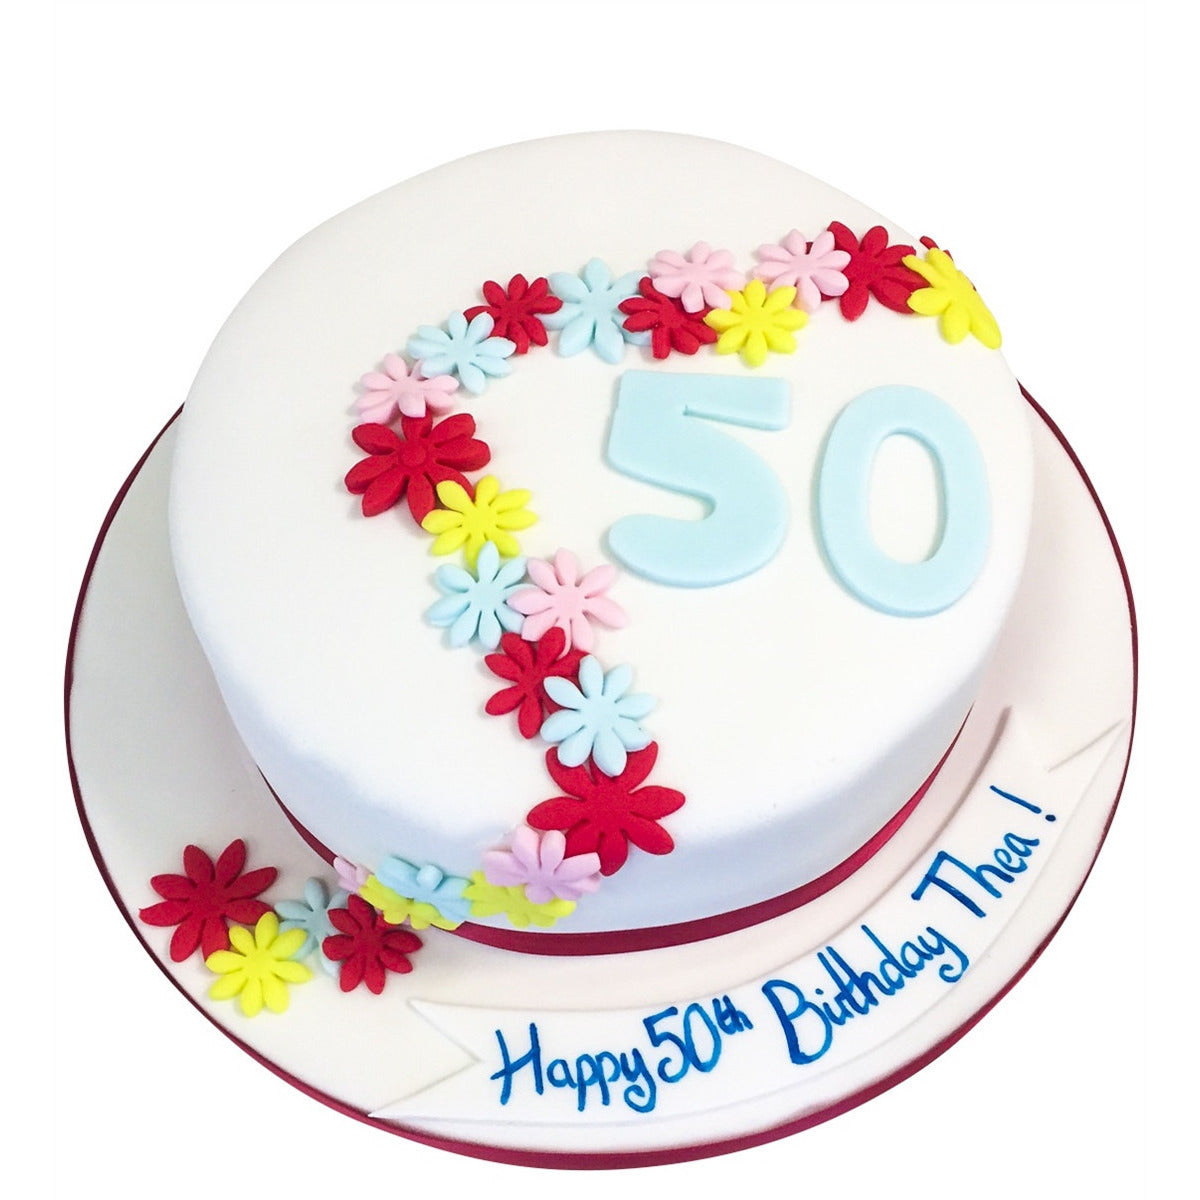 Astounding 50Th Birthday Cake Buy Online Free Uk Delivery New Cakes Funny Birthday Cards Online Alyptdamsfinfo